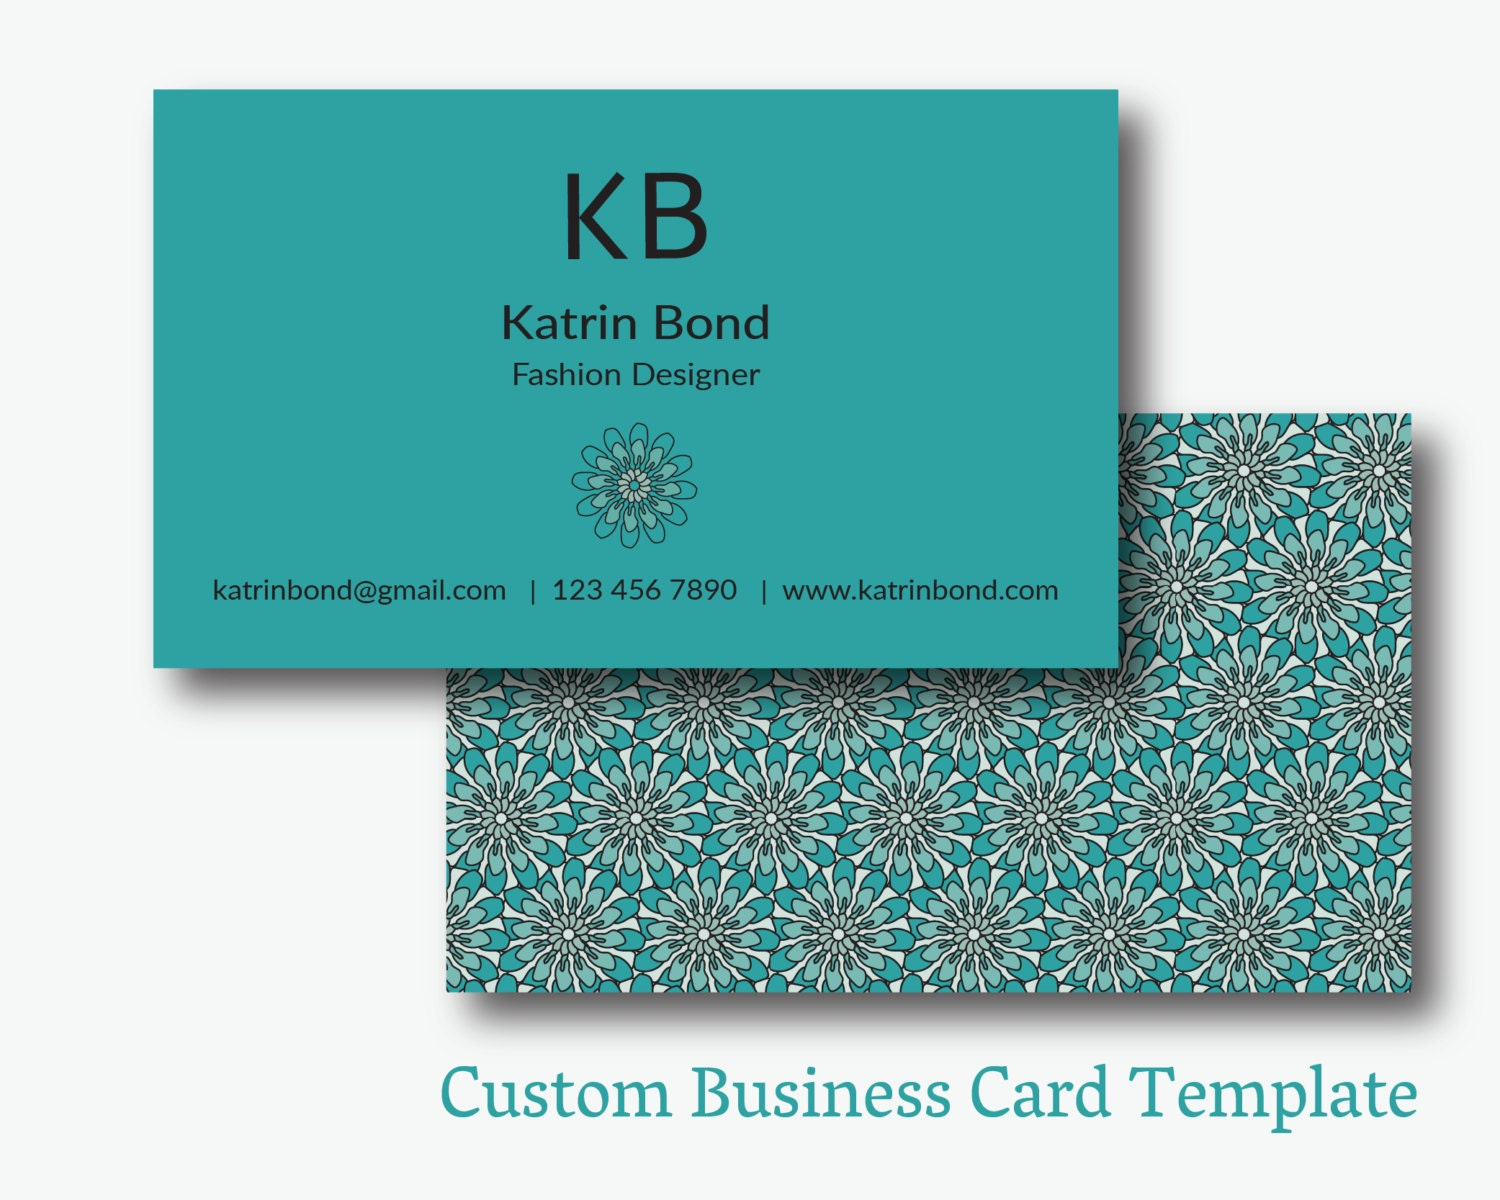 Business Card Template Calling Cards Custom Business Cards